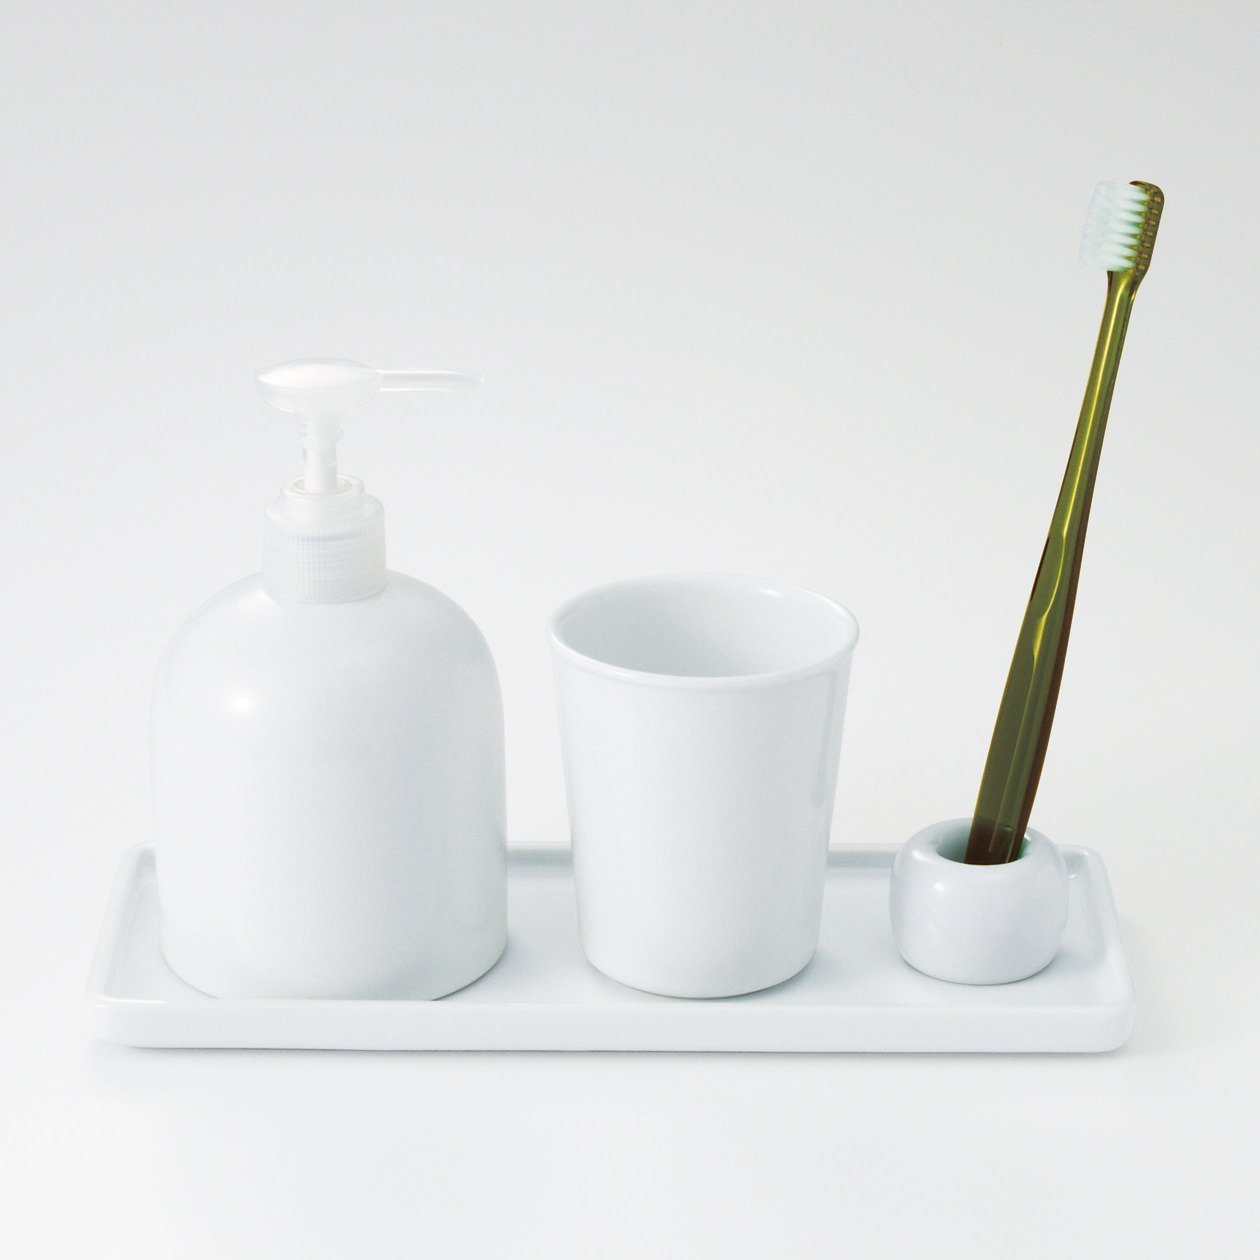 MUJI White Porcelain - Tray,Soap Dispenser,Cup,Tooth Brush Stand - Set